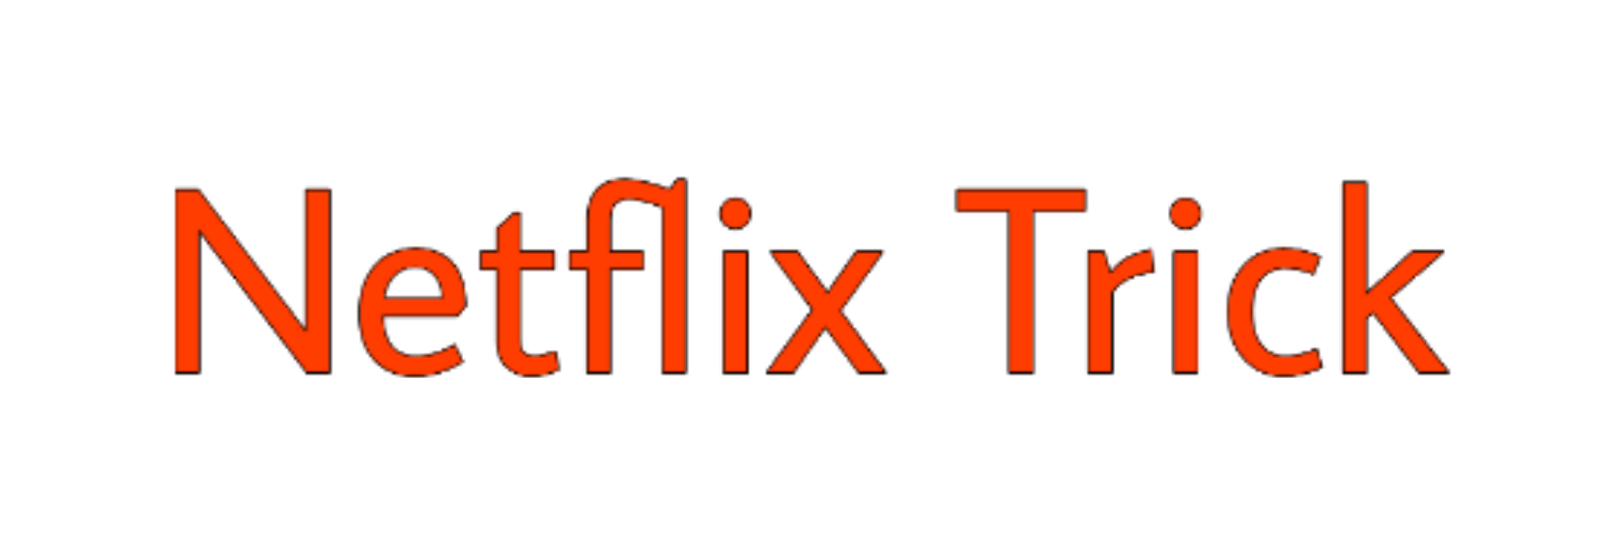 NetflixTrick.Com - All Is Here